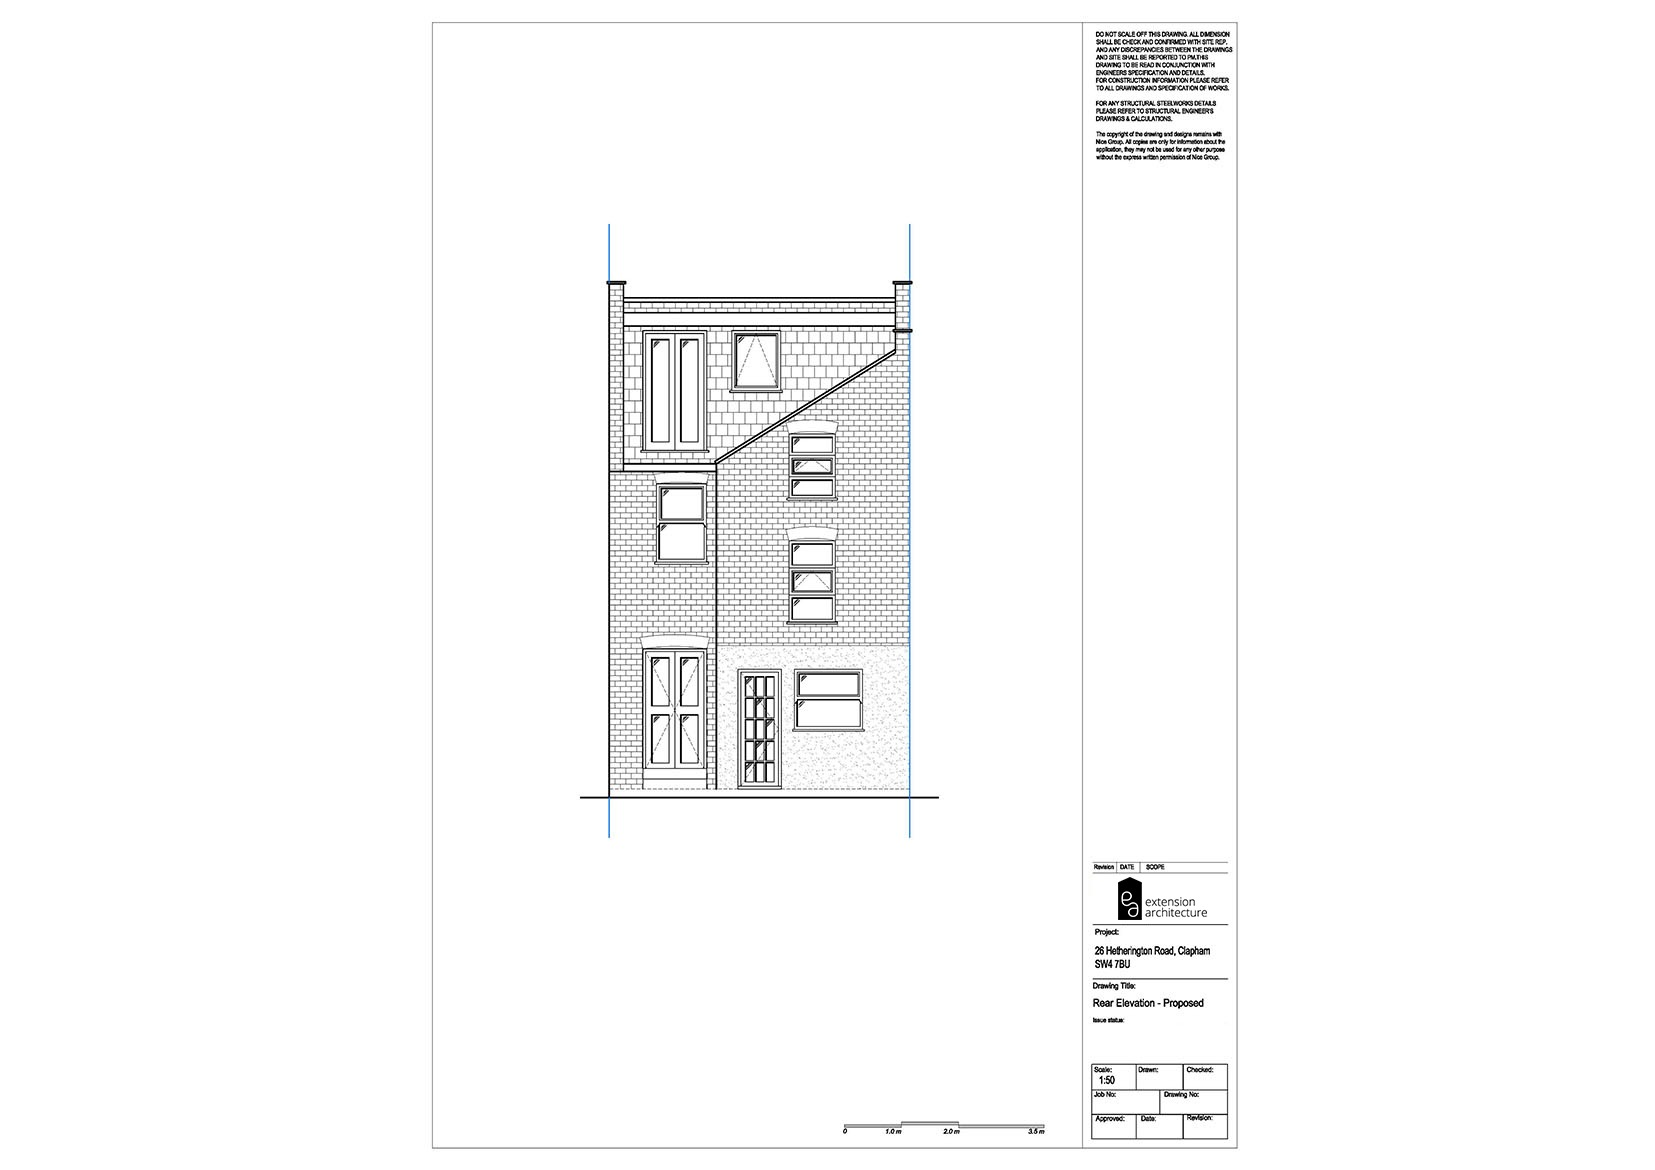 RESIDENTIAL 26HR proposed_basement extension...page 06